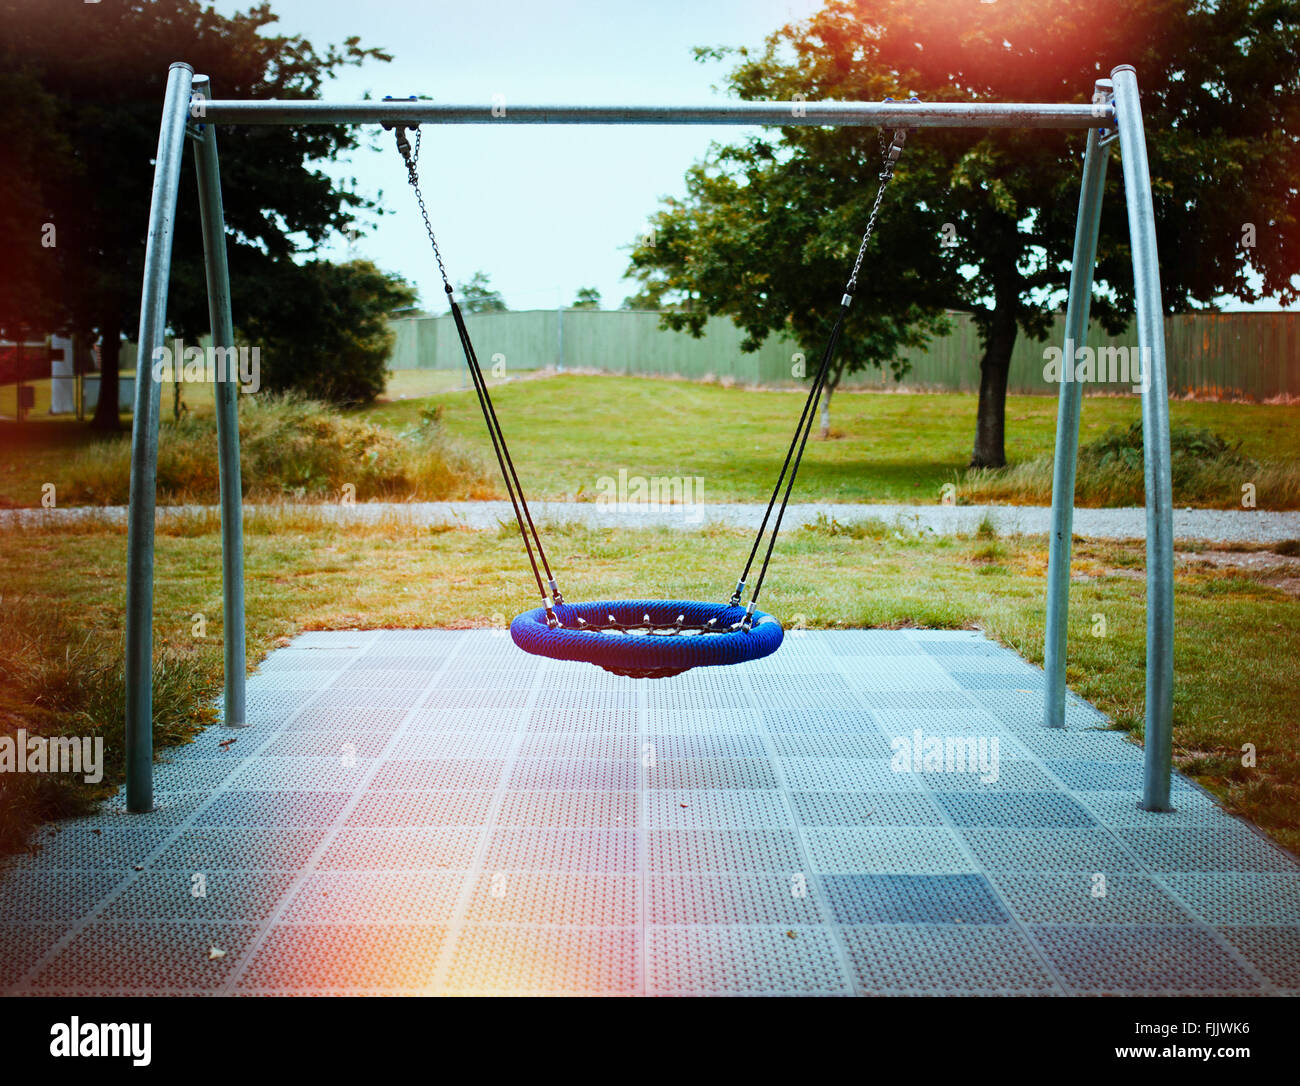 Swing in adventure playground, New Zealand - Stock Image